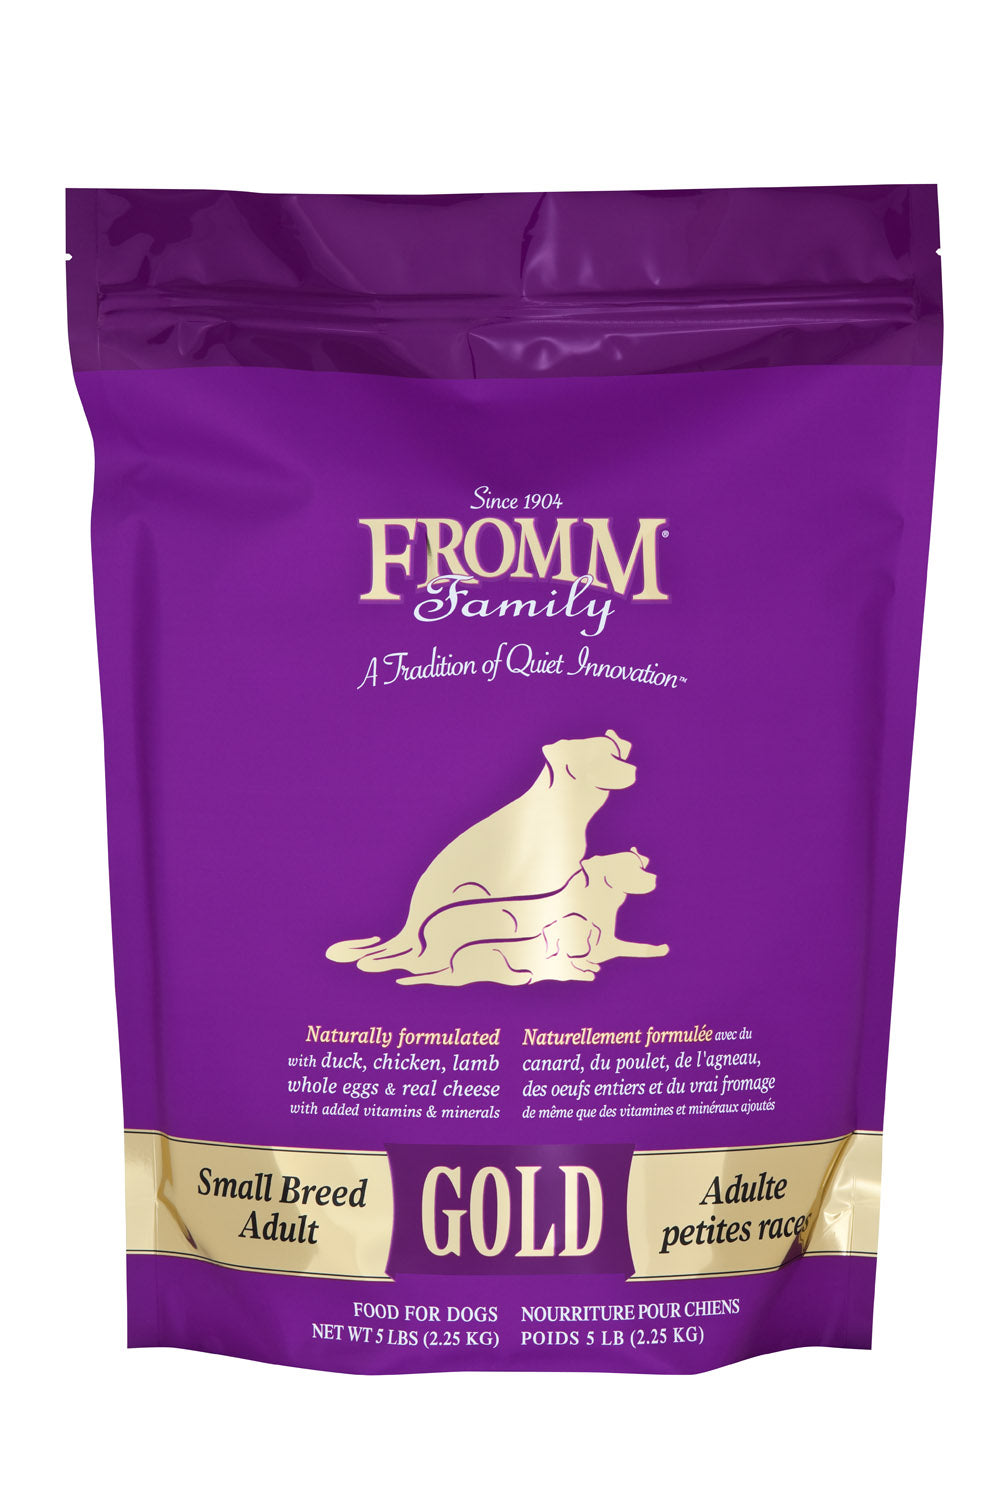 Fromm Gold Small Breed Adult Dry Dog Food 15-lb at NJPetSupply.com